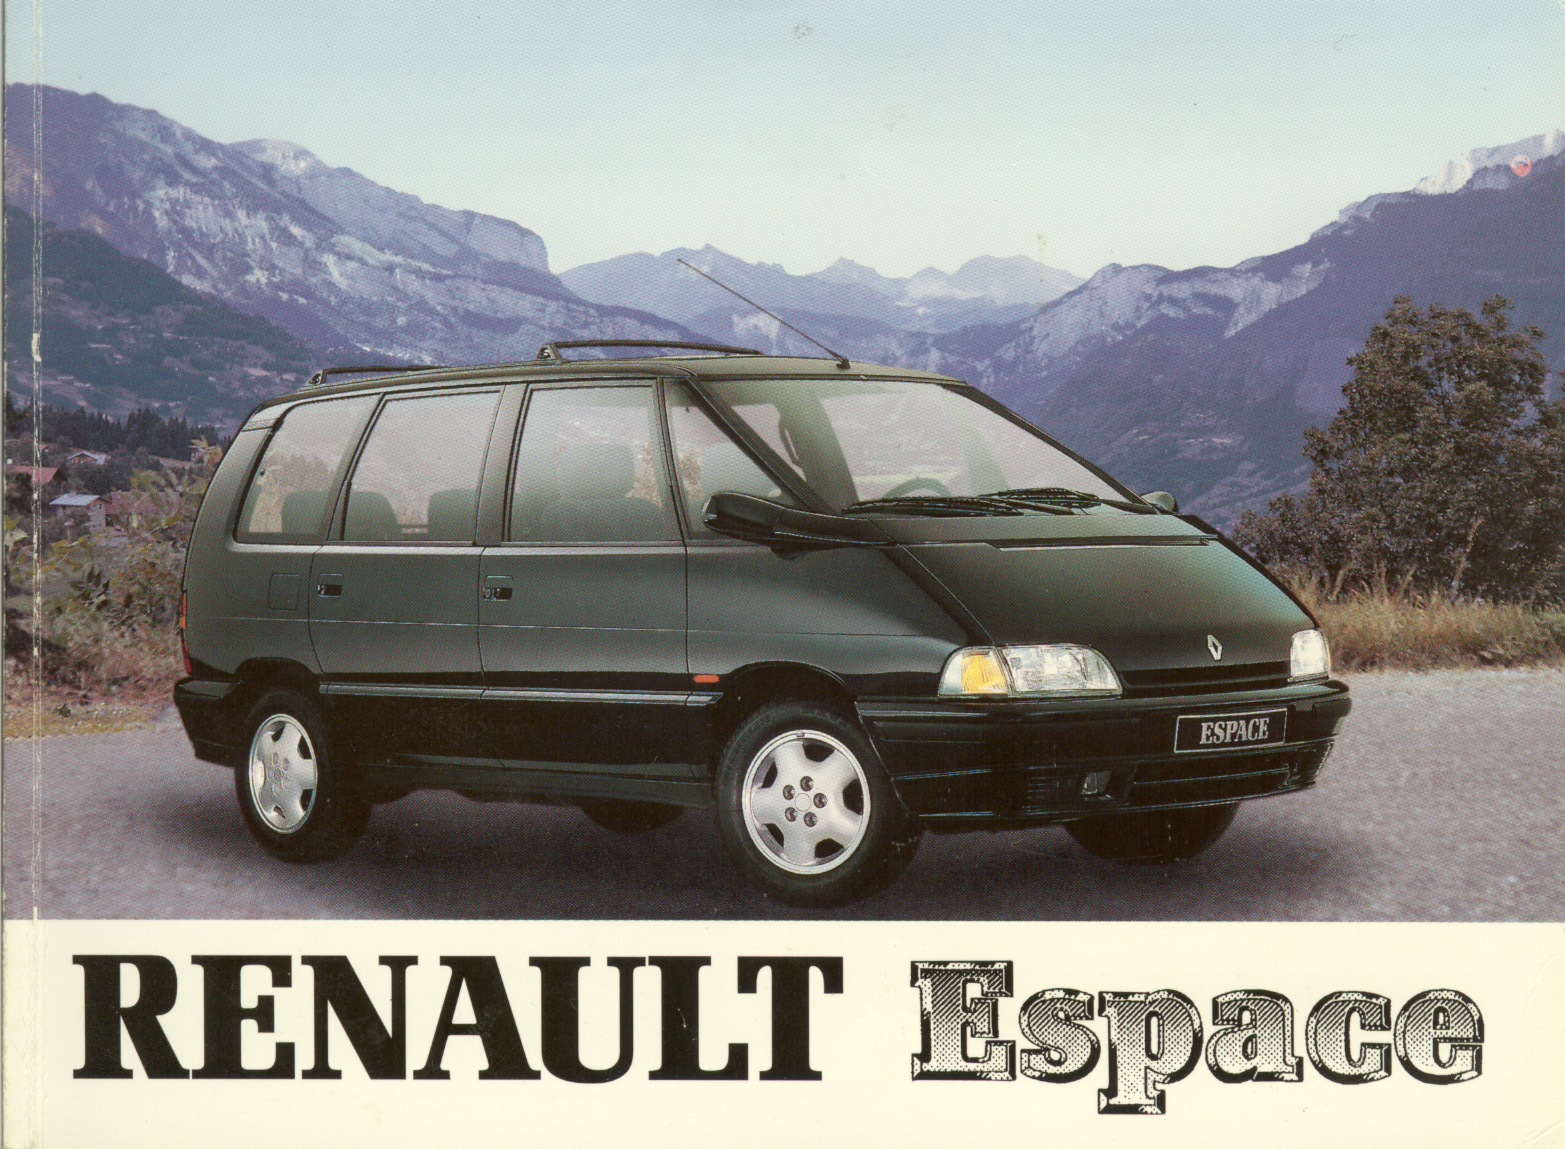 1991 renault espace ii j63 pictures information and specs renault espace ii j63 1991 photo gallery publicscrutiny Image collections